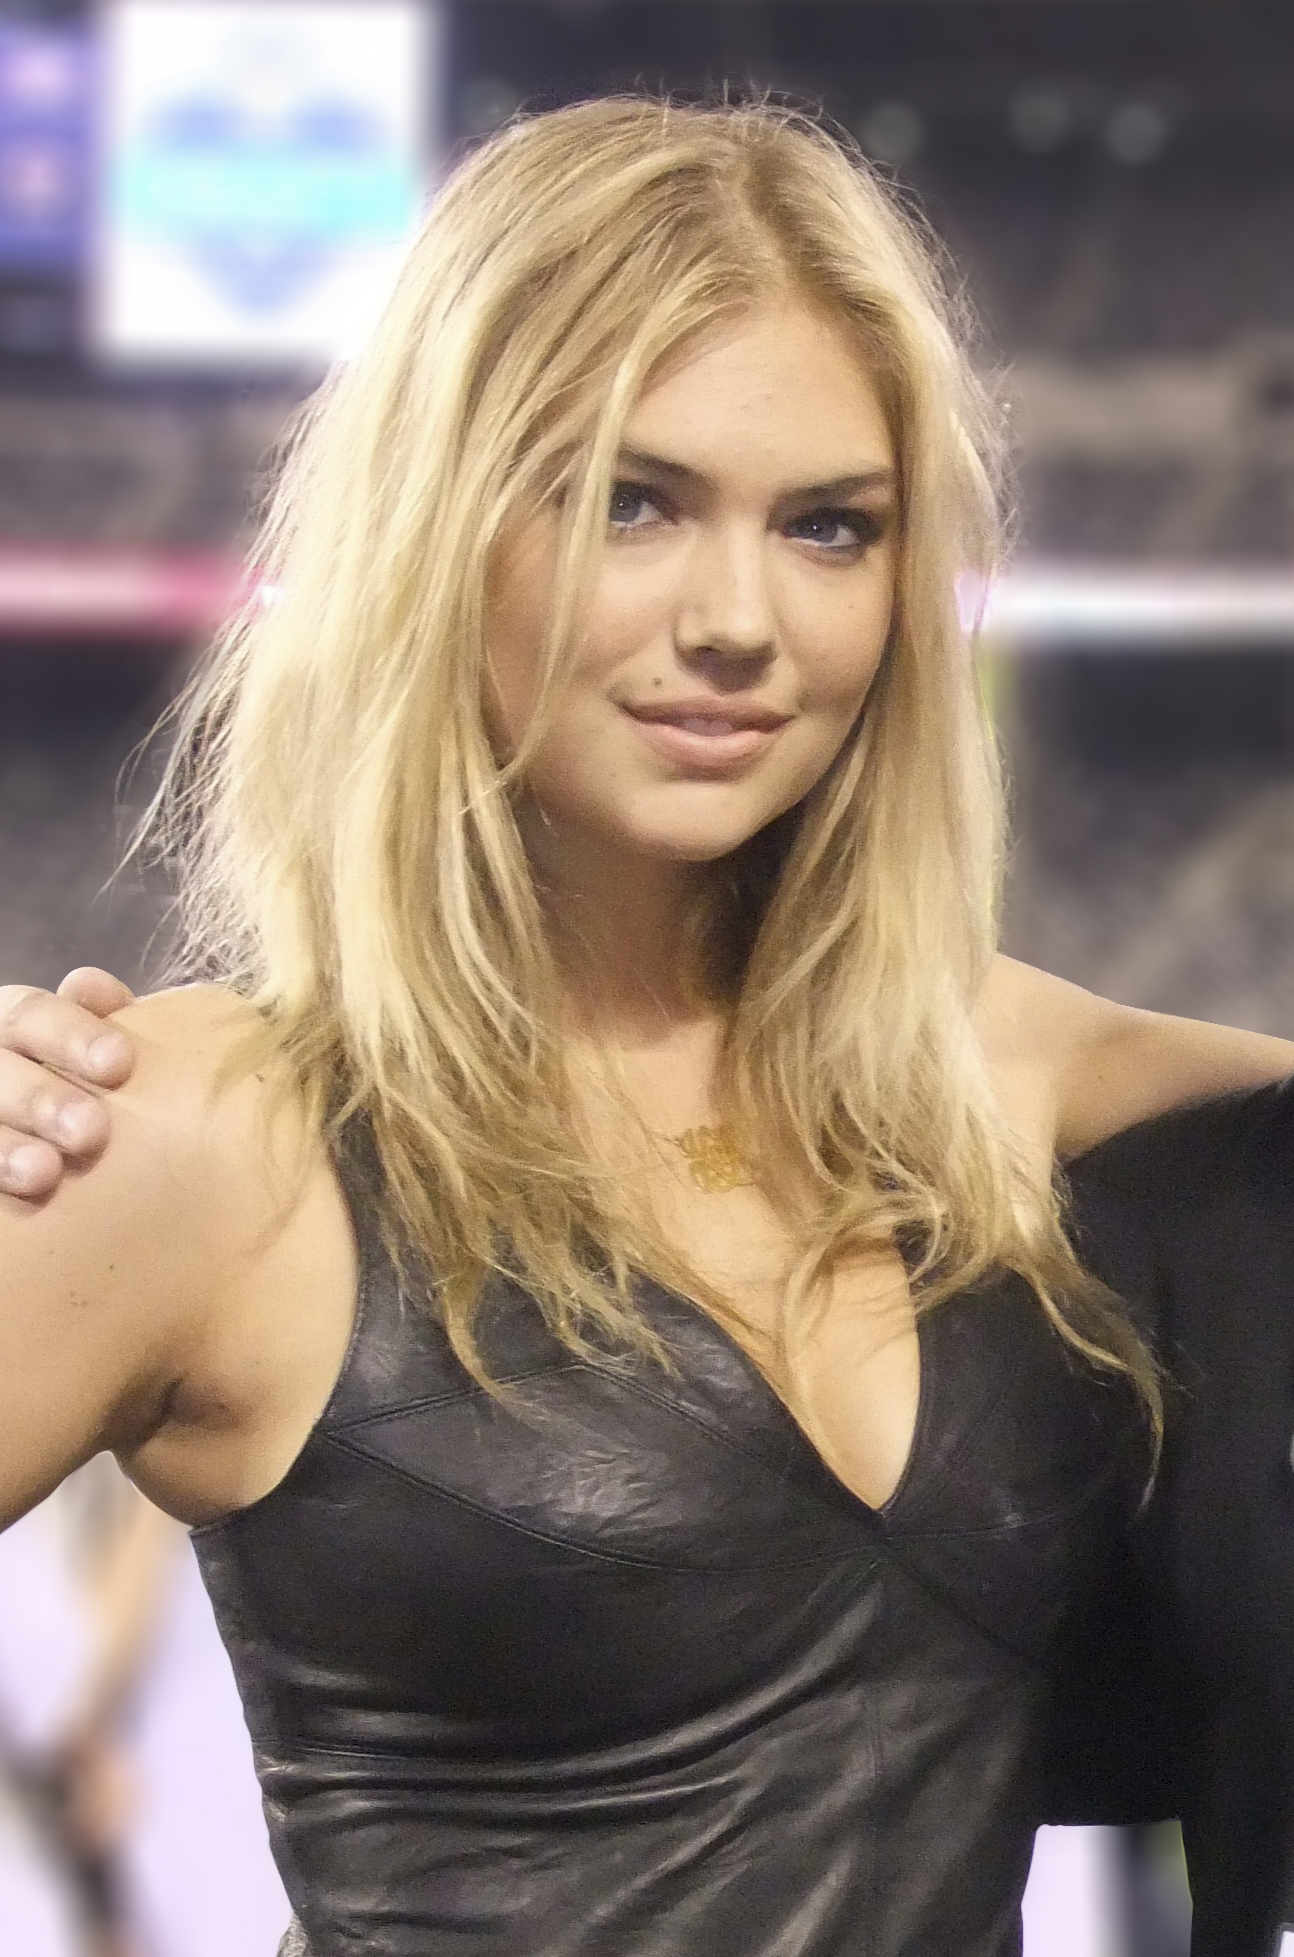 Kate Upton: Kate Upton Shows That Curves Are Beautiful Too (Photos AND